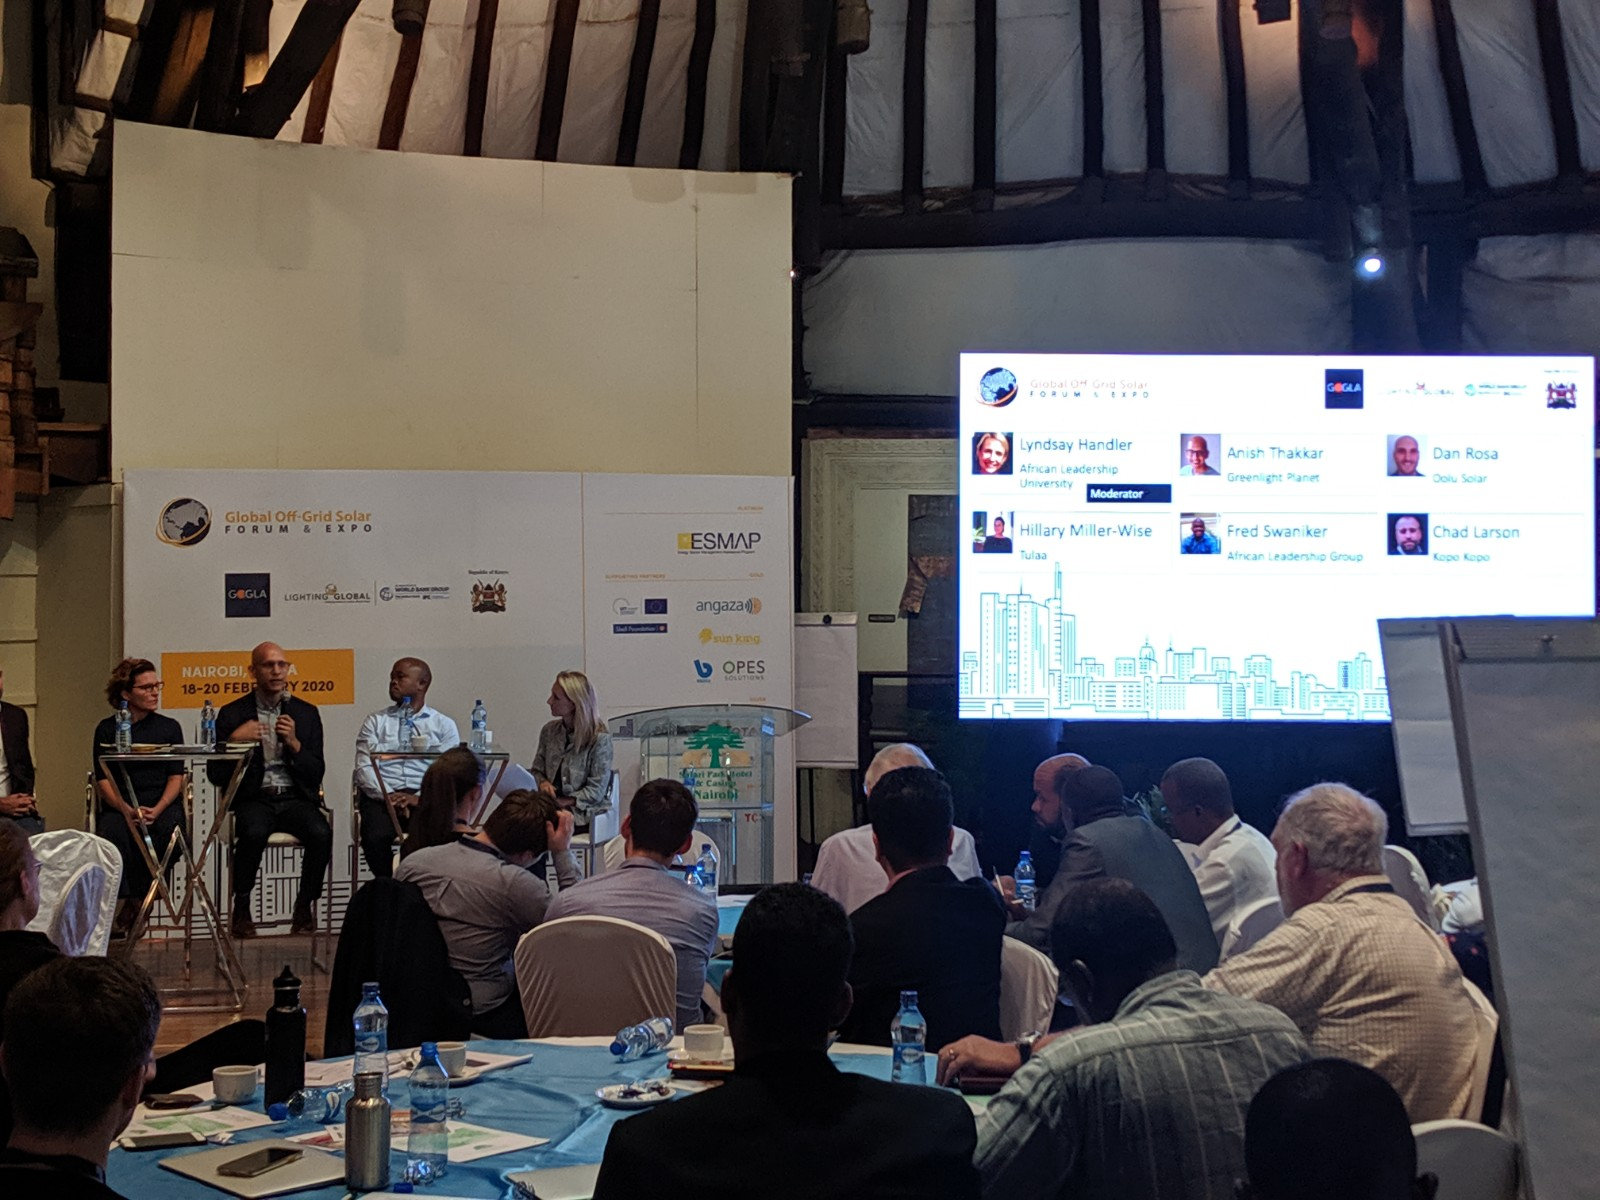 Global Off-Grid Solar Forum & Expo: 3rd day on e-cooking, growing solar biz, PAYGo companies & more